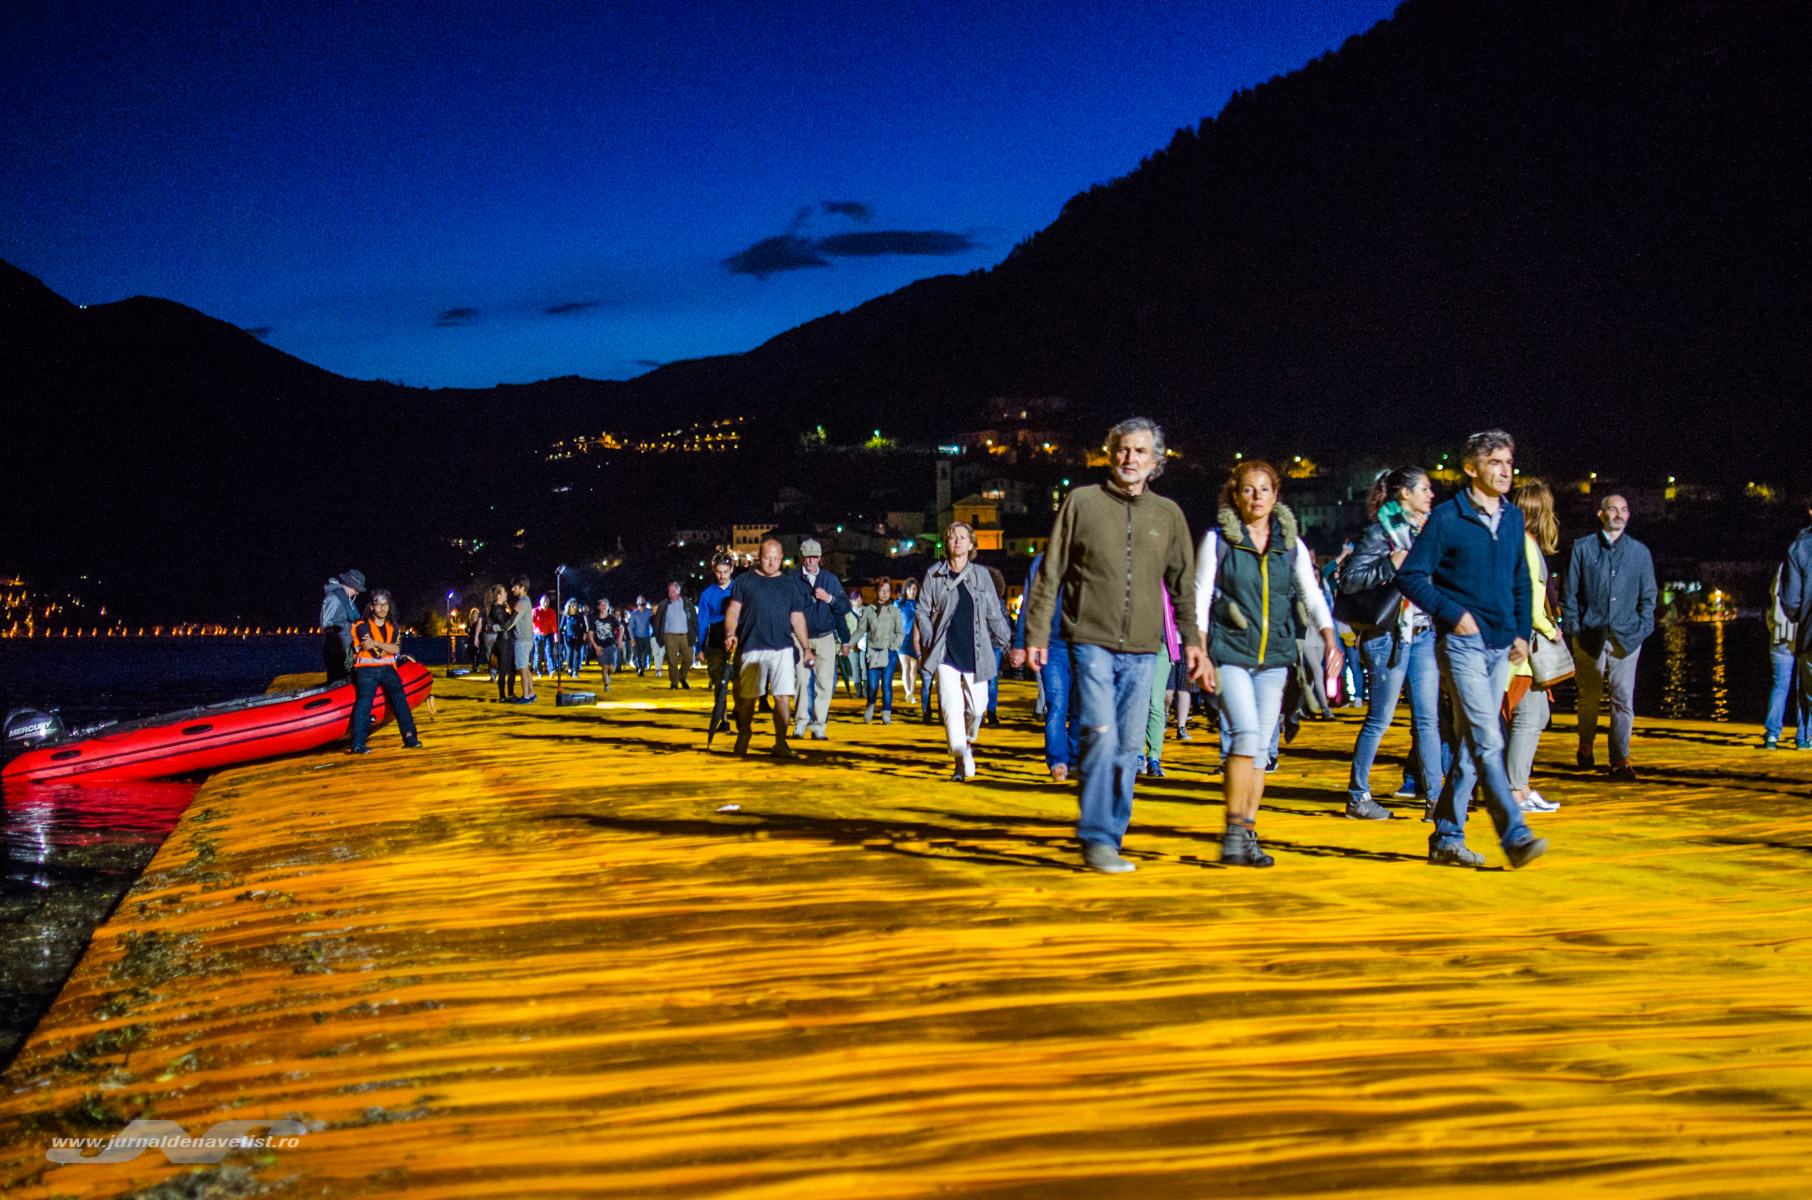 The Floating Piers 8192